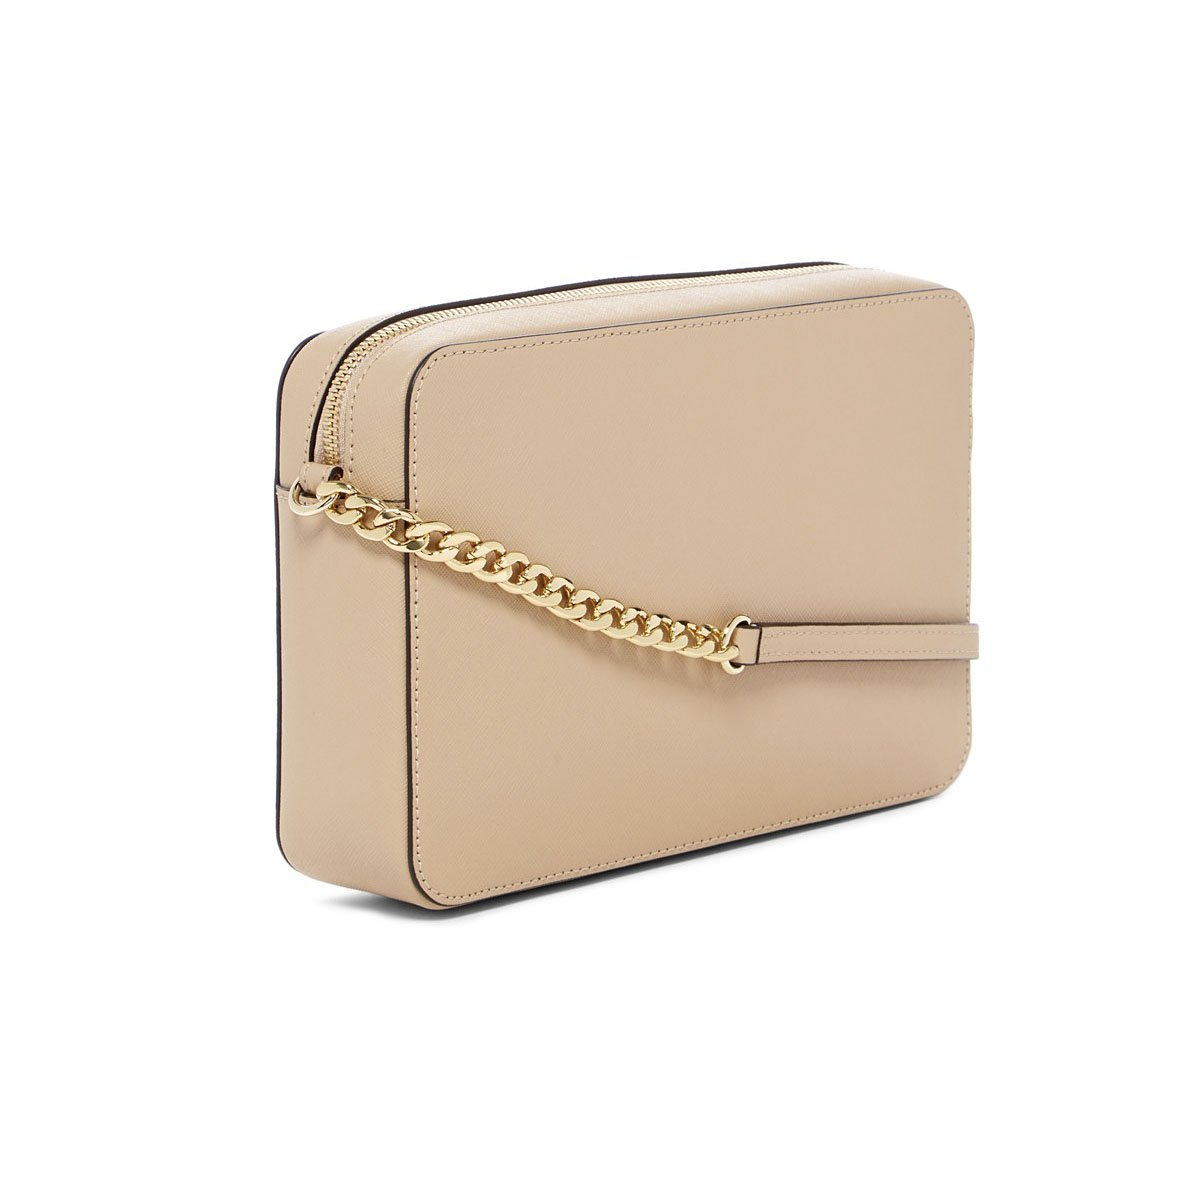 Michael Kors Oyster Leather Gold Peek a Boo Heart Large East West Crossbody by Michael Kors (Image #2)